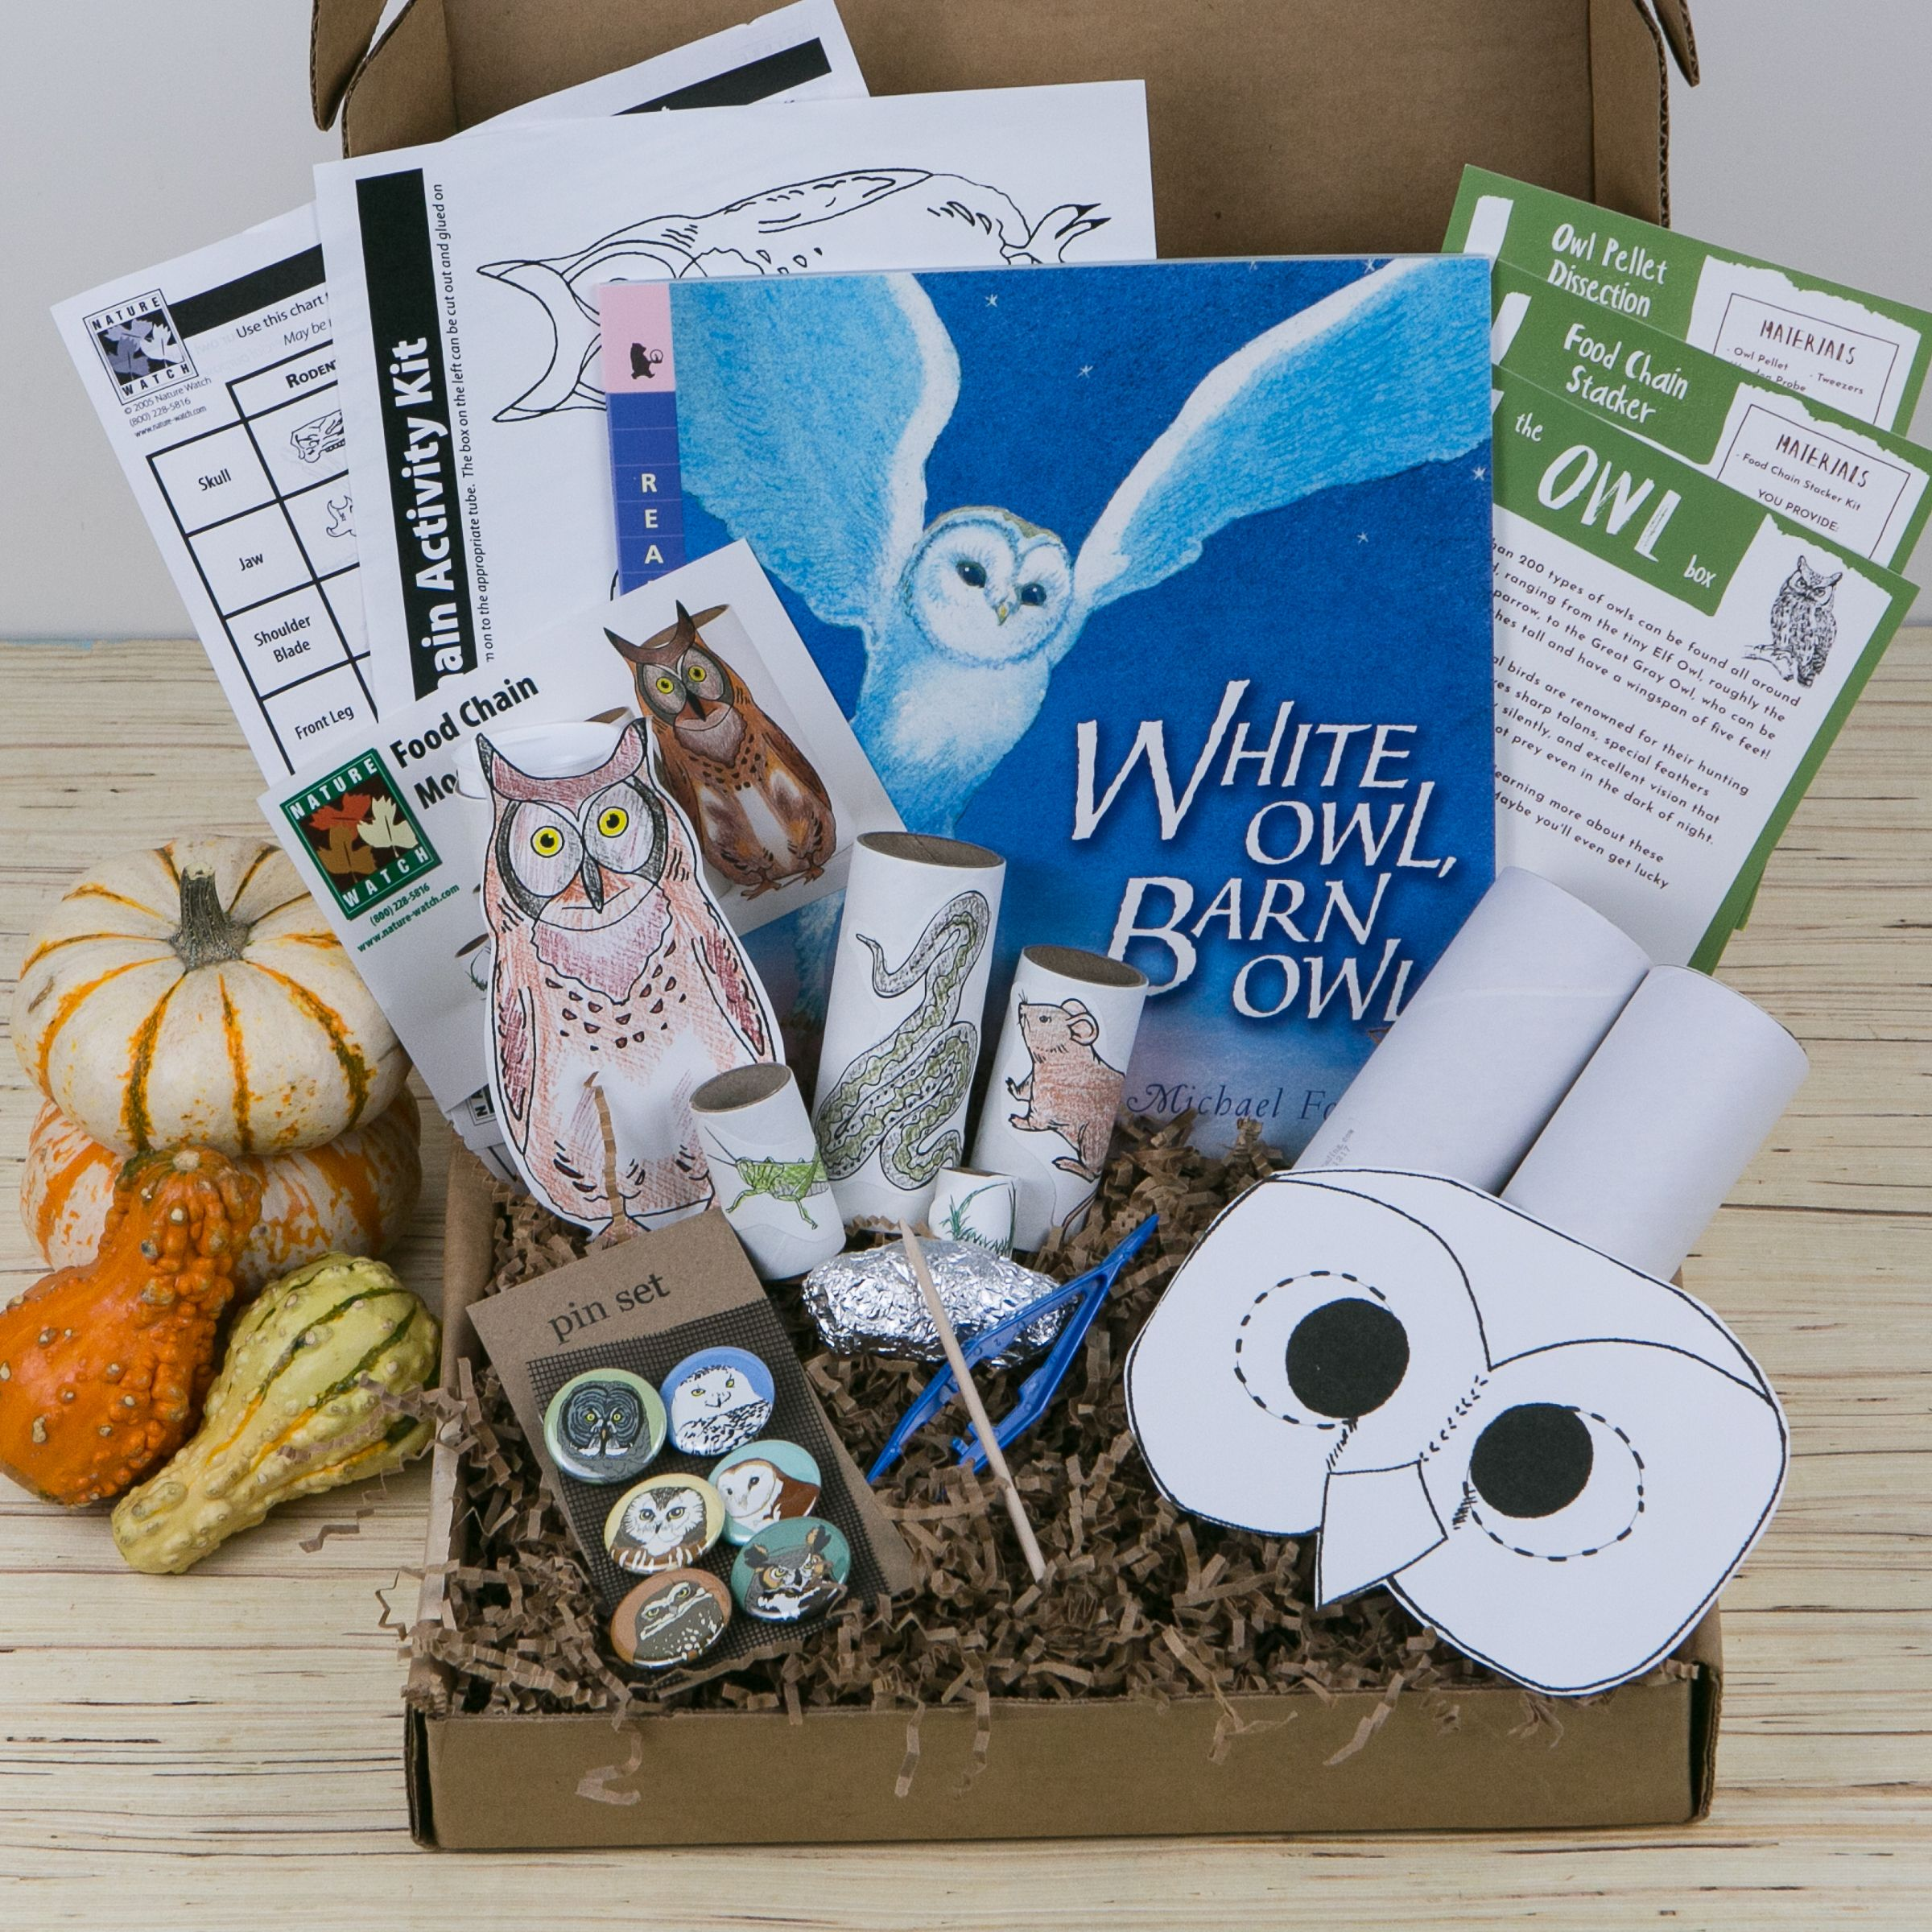 The Wonderkin Owl Box Comes Jam Packed With Everything You